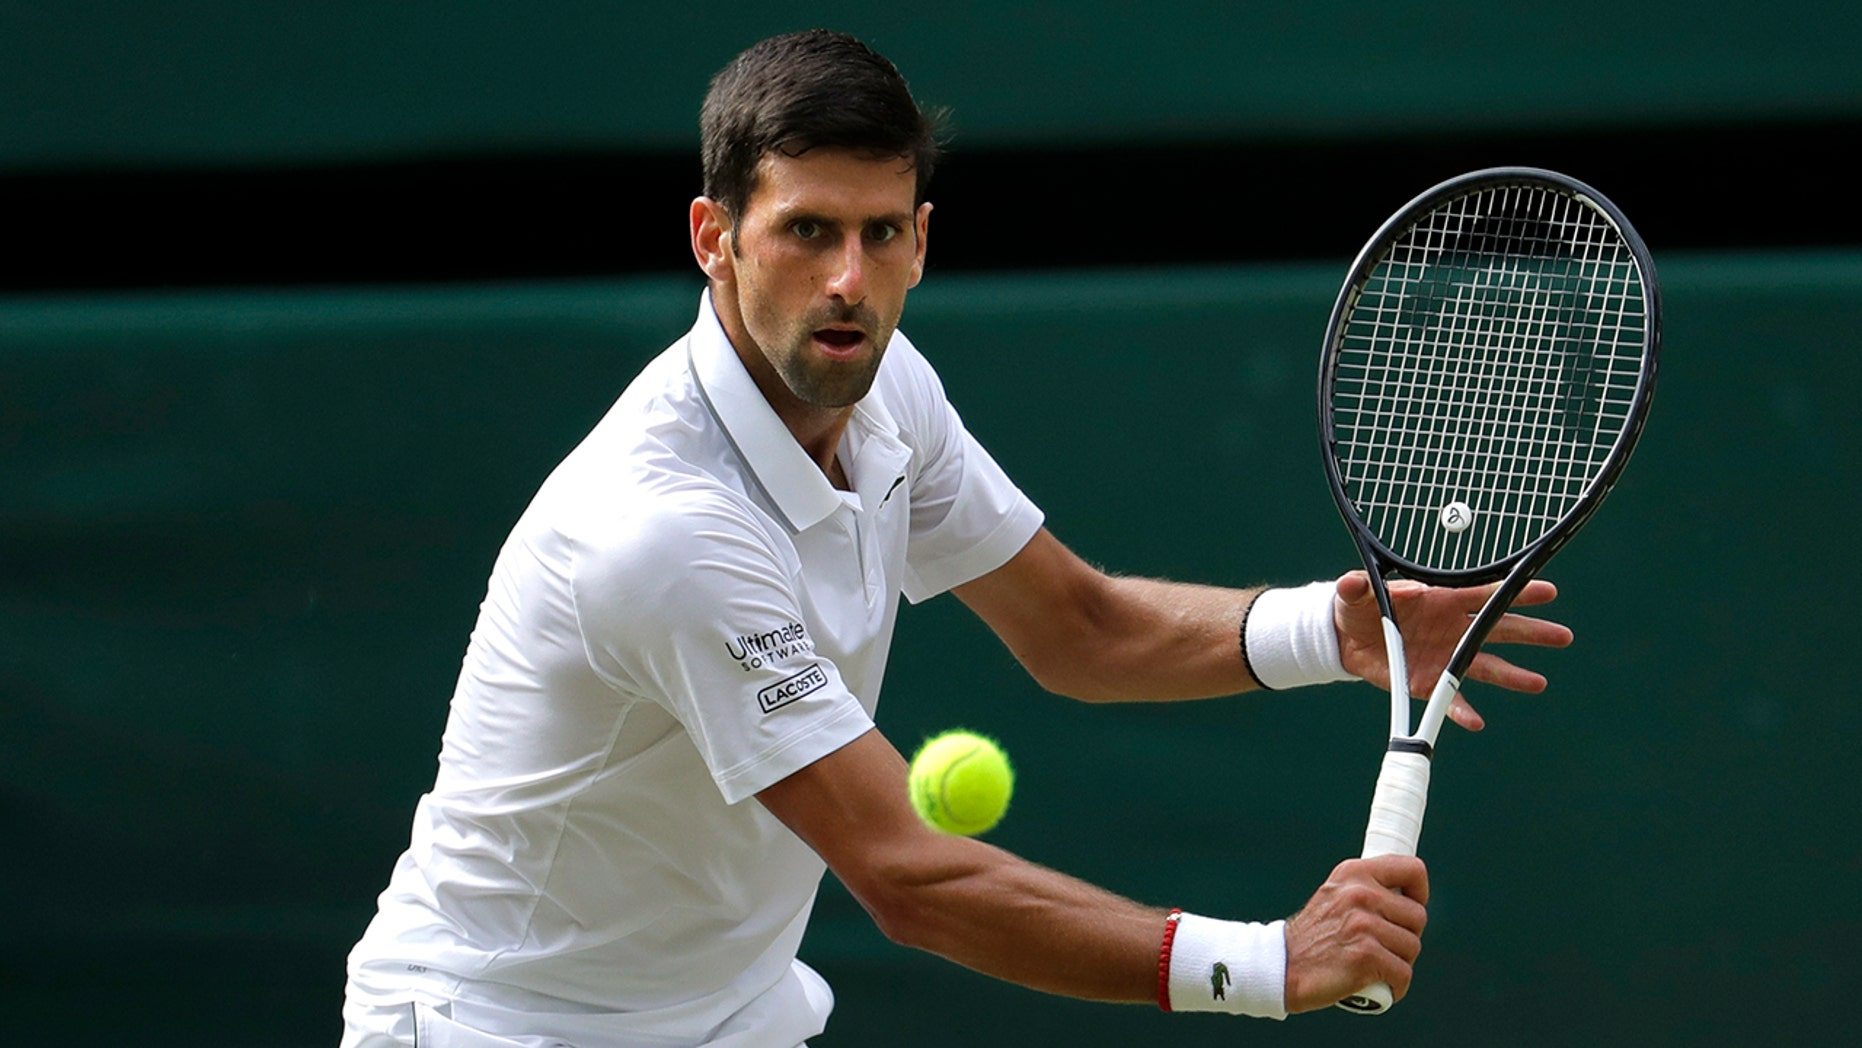 Serbia's Novak Djokovic returns the ball to Switzerland's Roger Federer during the men's singles final match of the Wimbledon Tennis Championships in London, Sunday, July 14, 2019. (AP Photo/Ben Curtis)